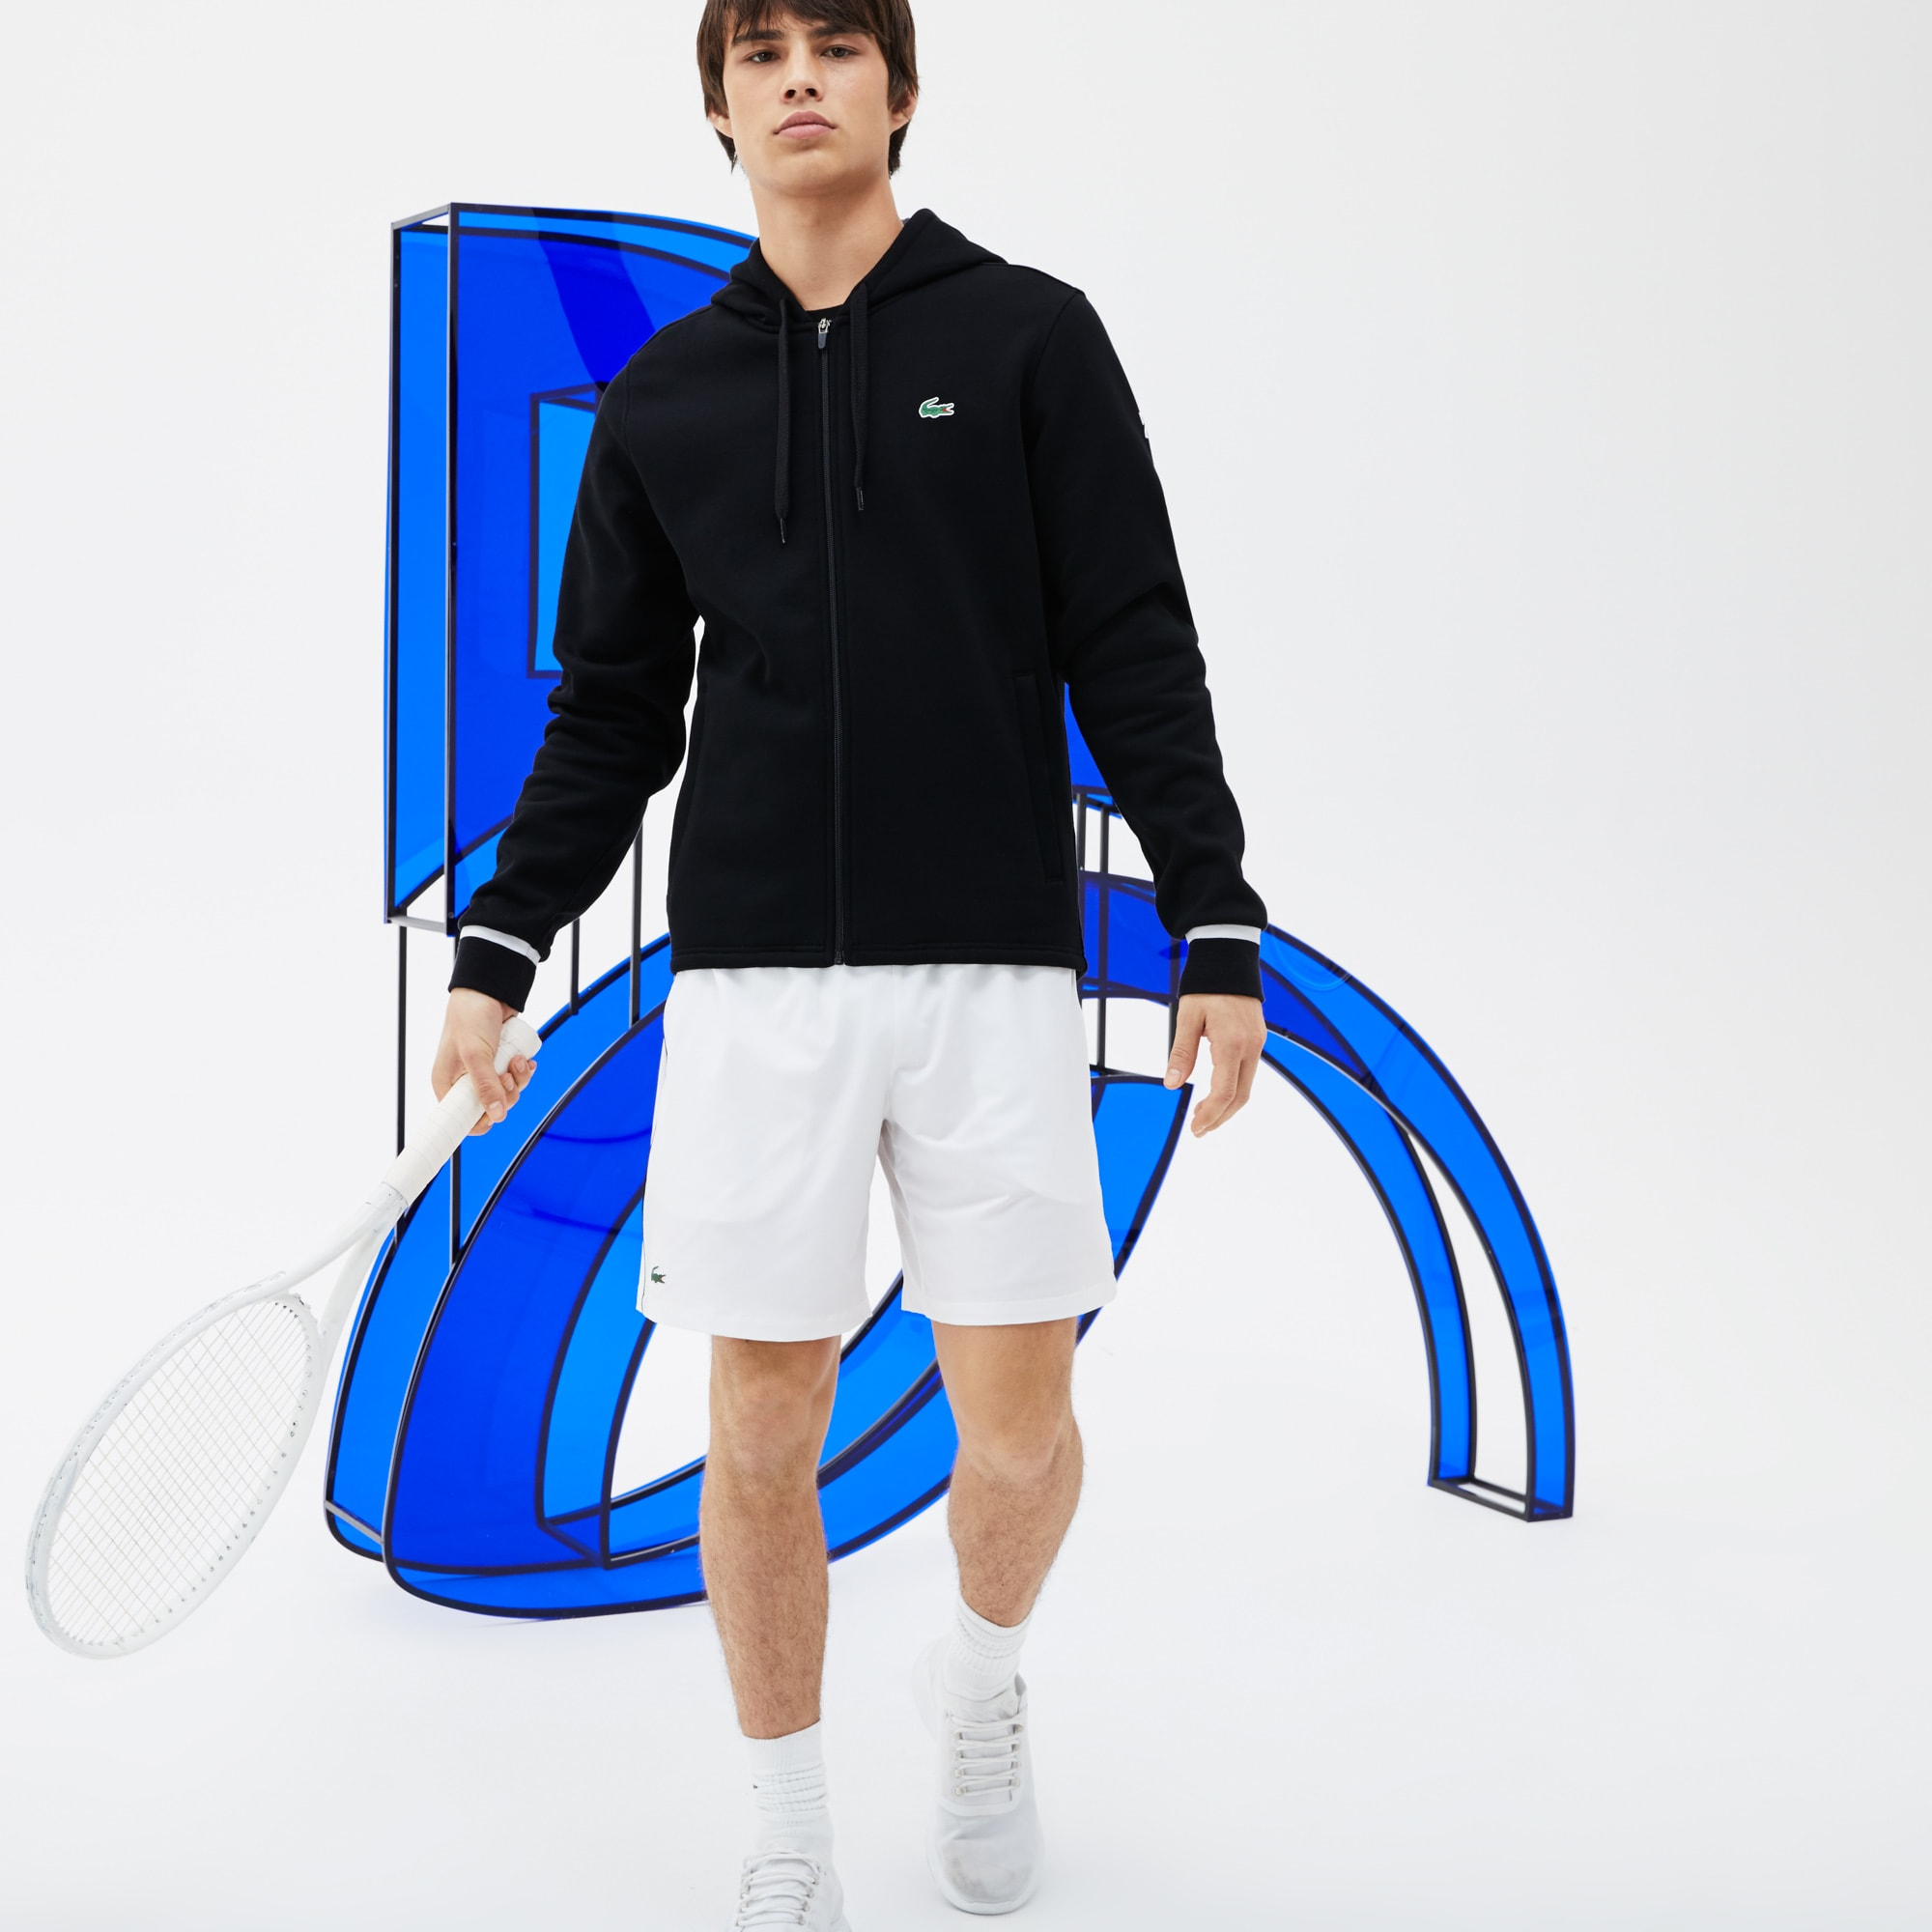 Men's SPORT Hooded Sweatshirt - Novak Djokovic Supporter Collection